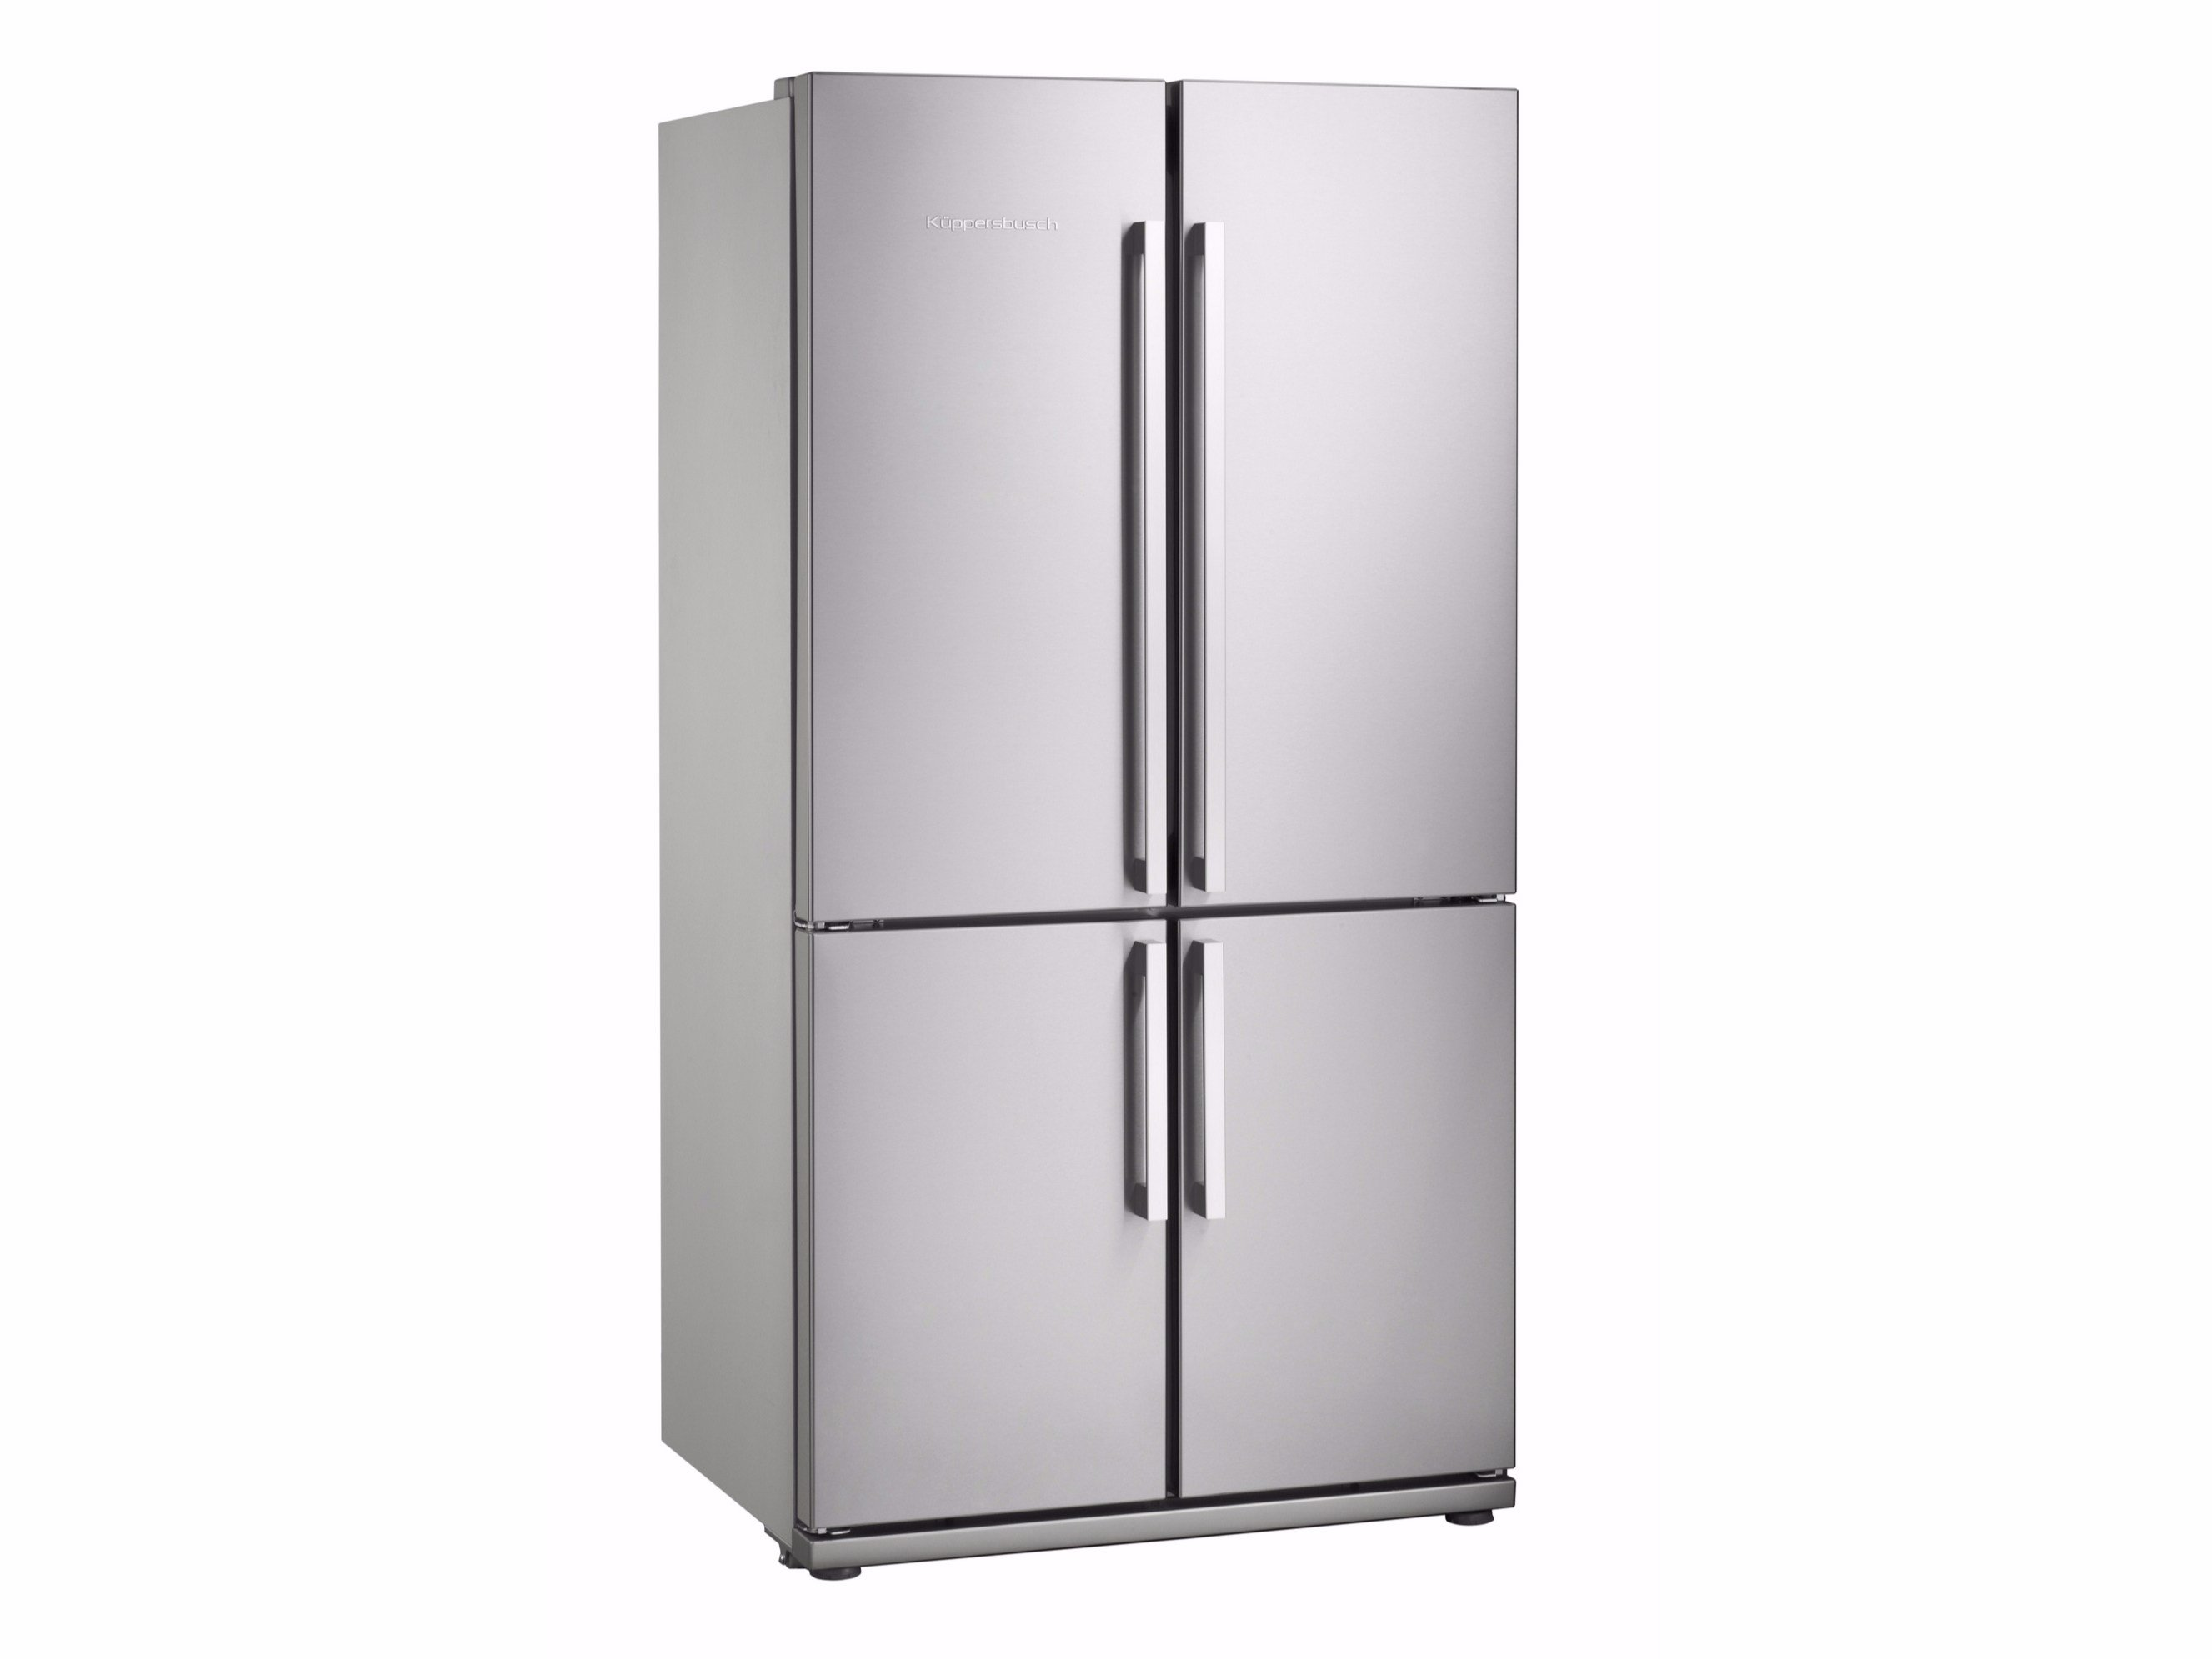 American style no frost stainless steel refrigerator with ice ...